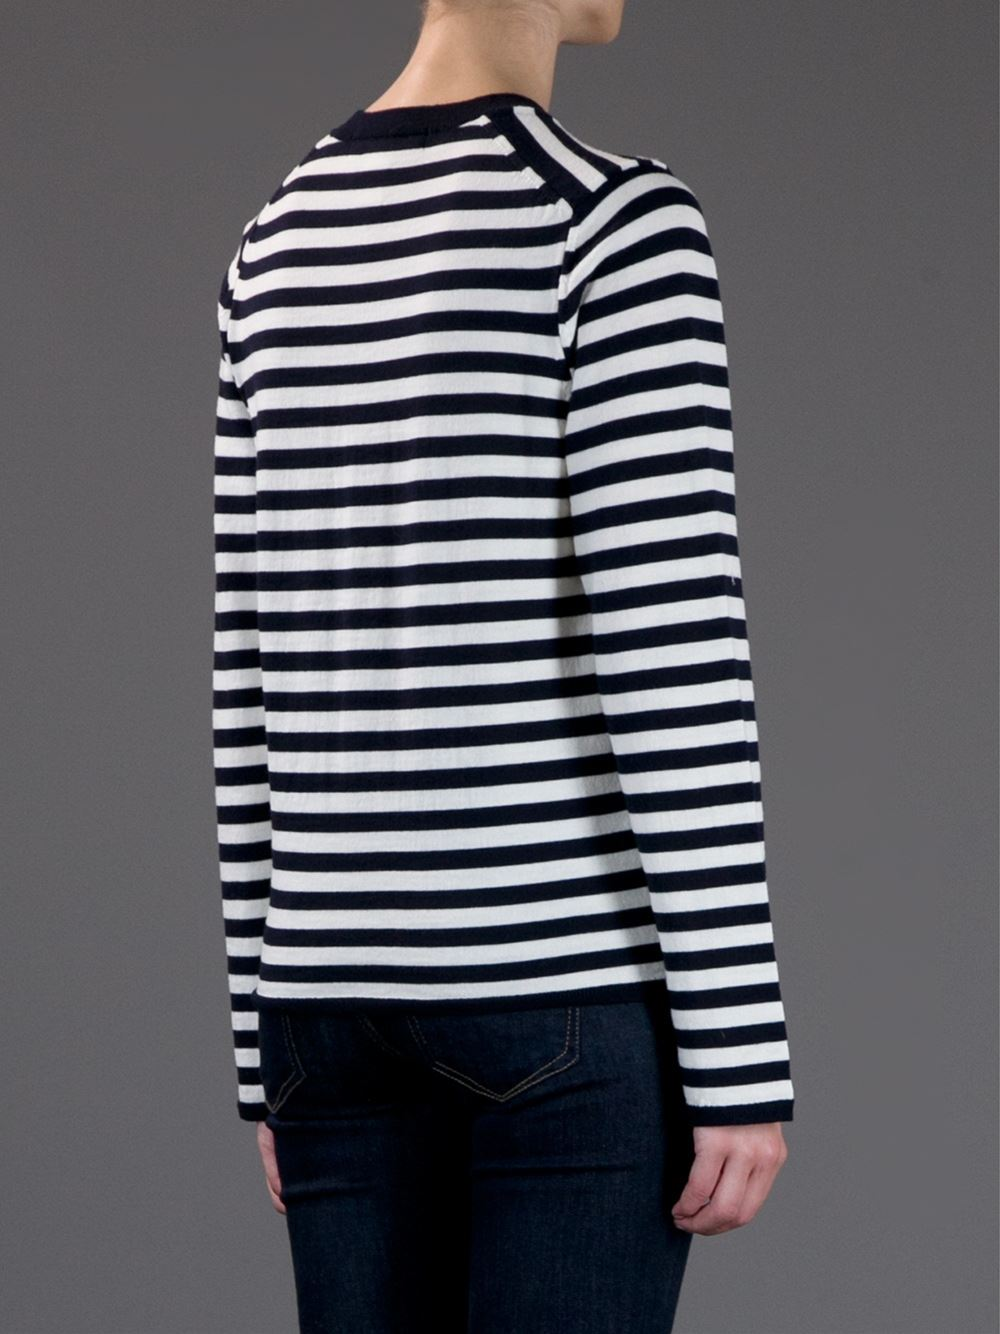 Comme des gar ons shirt striped crew neck sweater solis for Crew neck sweater with collared shirt